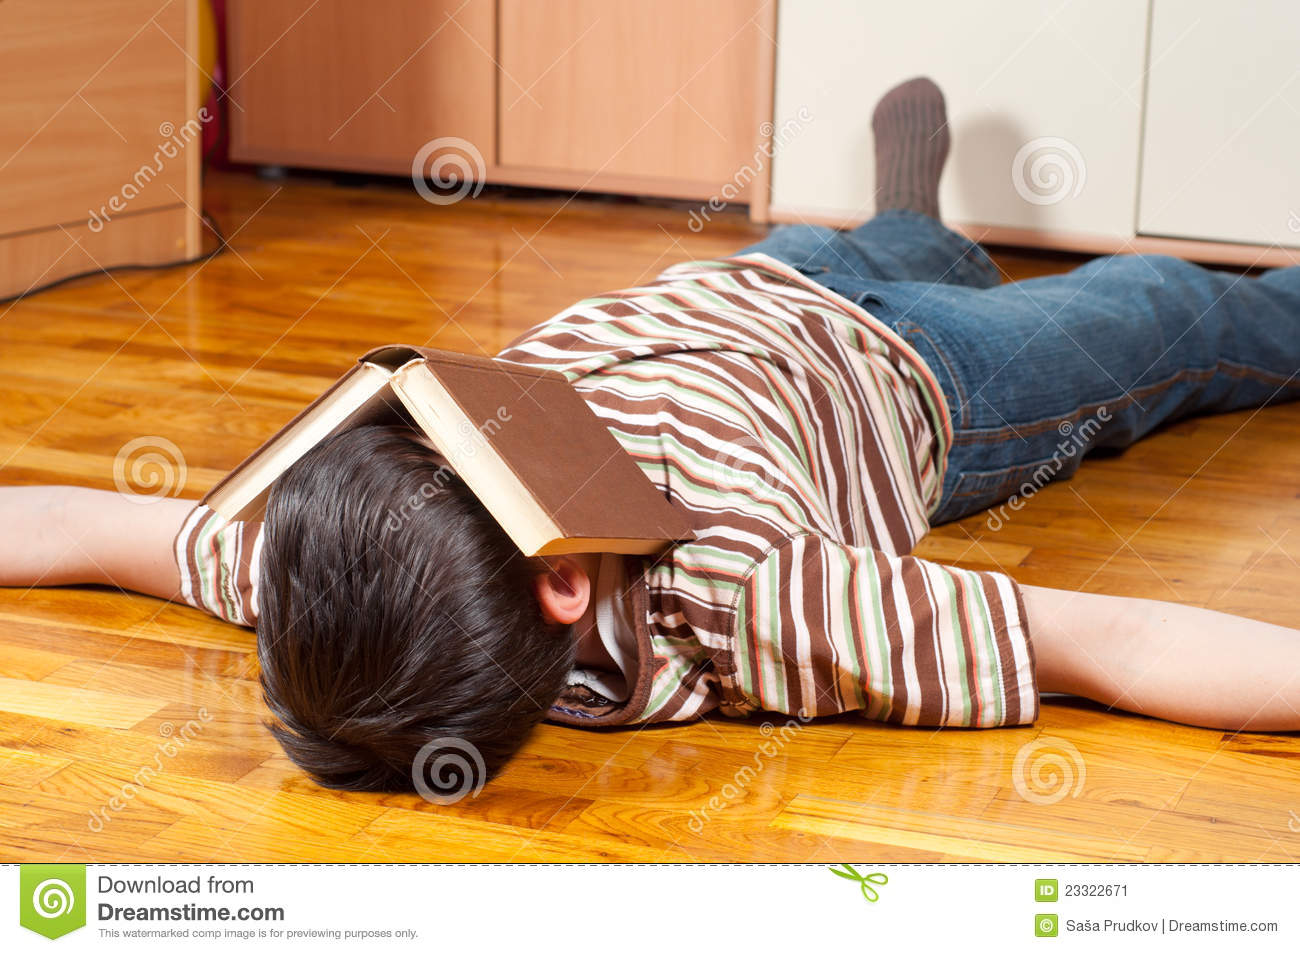 Book Covering Face : Teenage boy sleeping with book covering his face stock